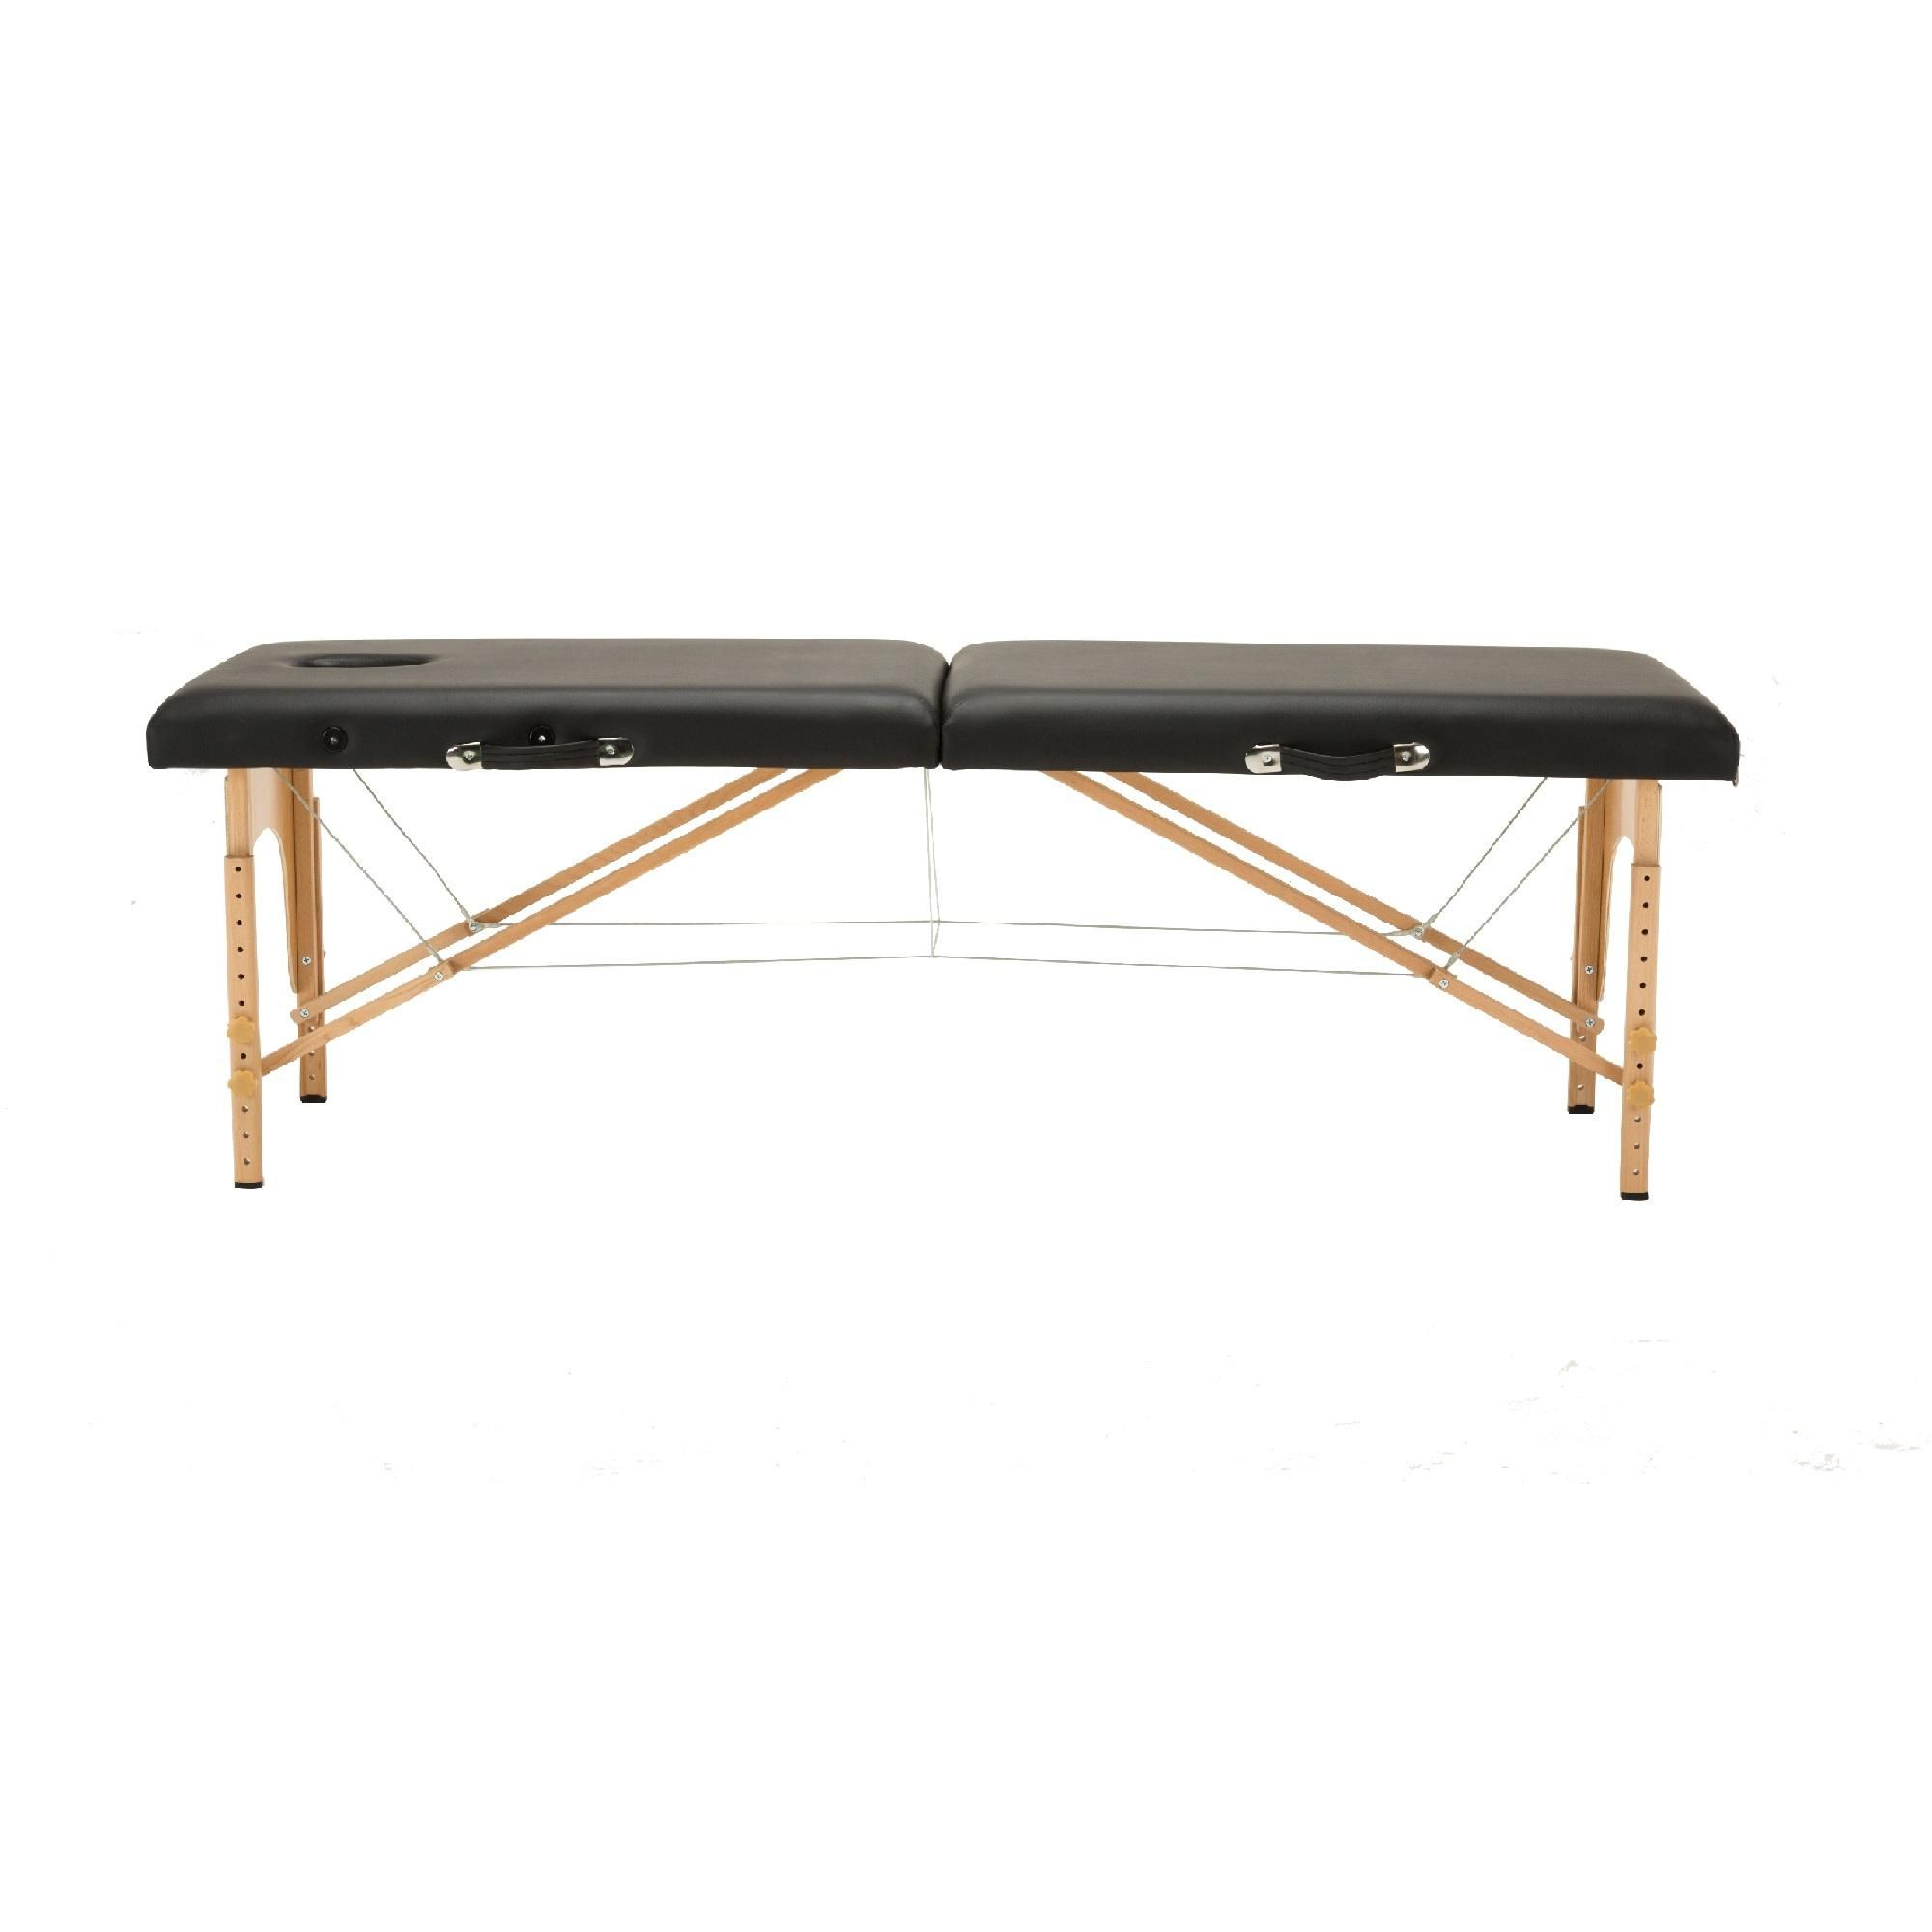 """Dermalogic Professional Portable Folding Massage Table Bed with Carrying Case, Black (74"""" L x 28"""" W)"""